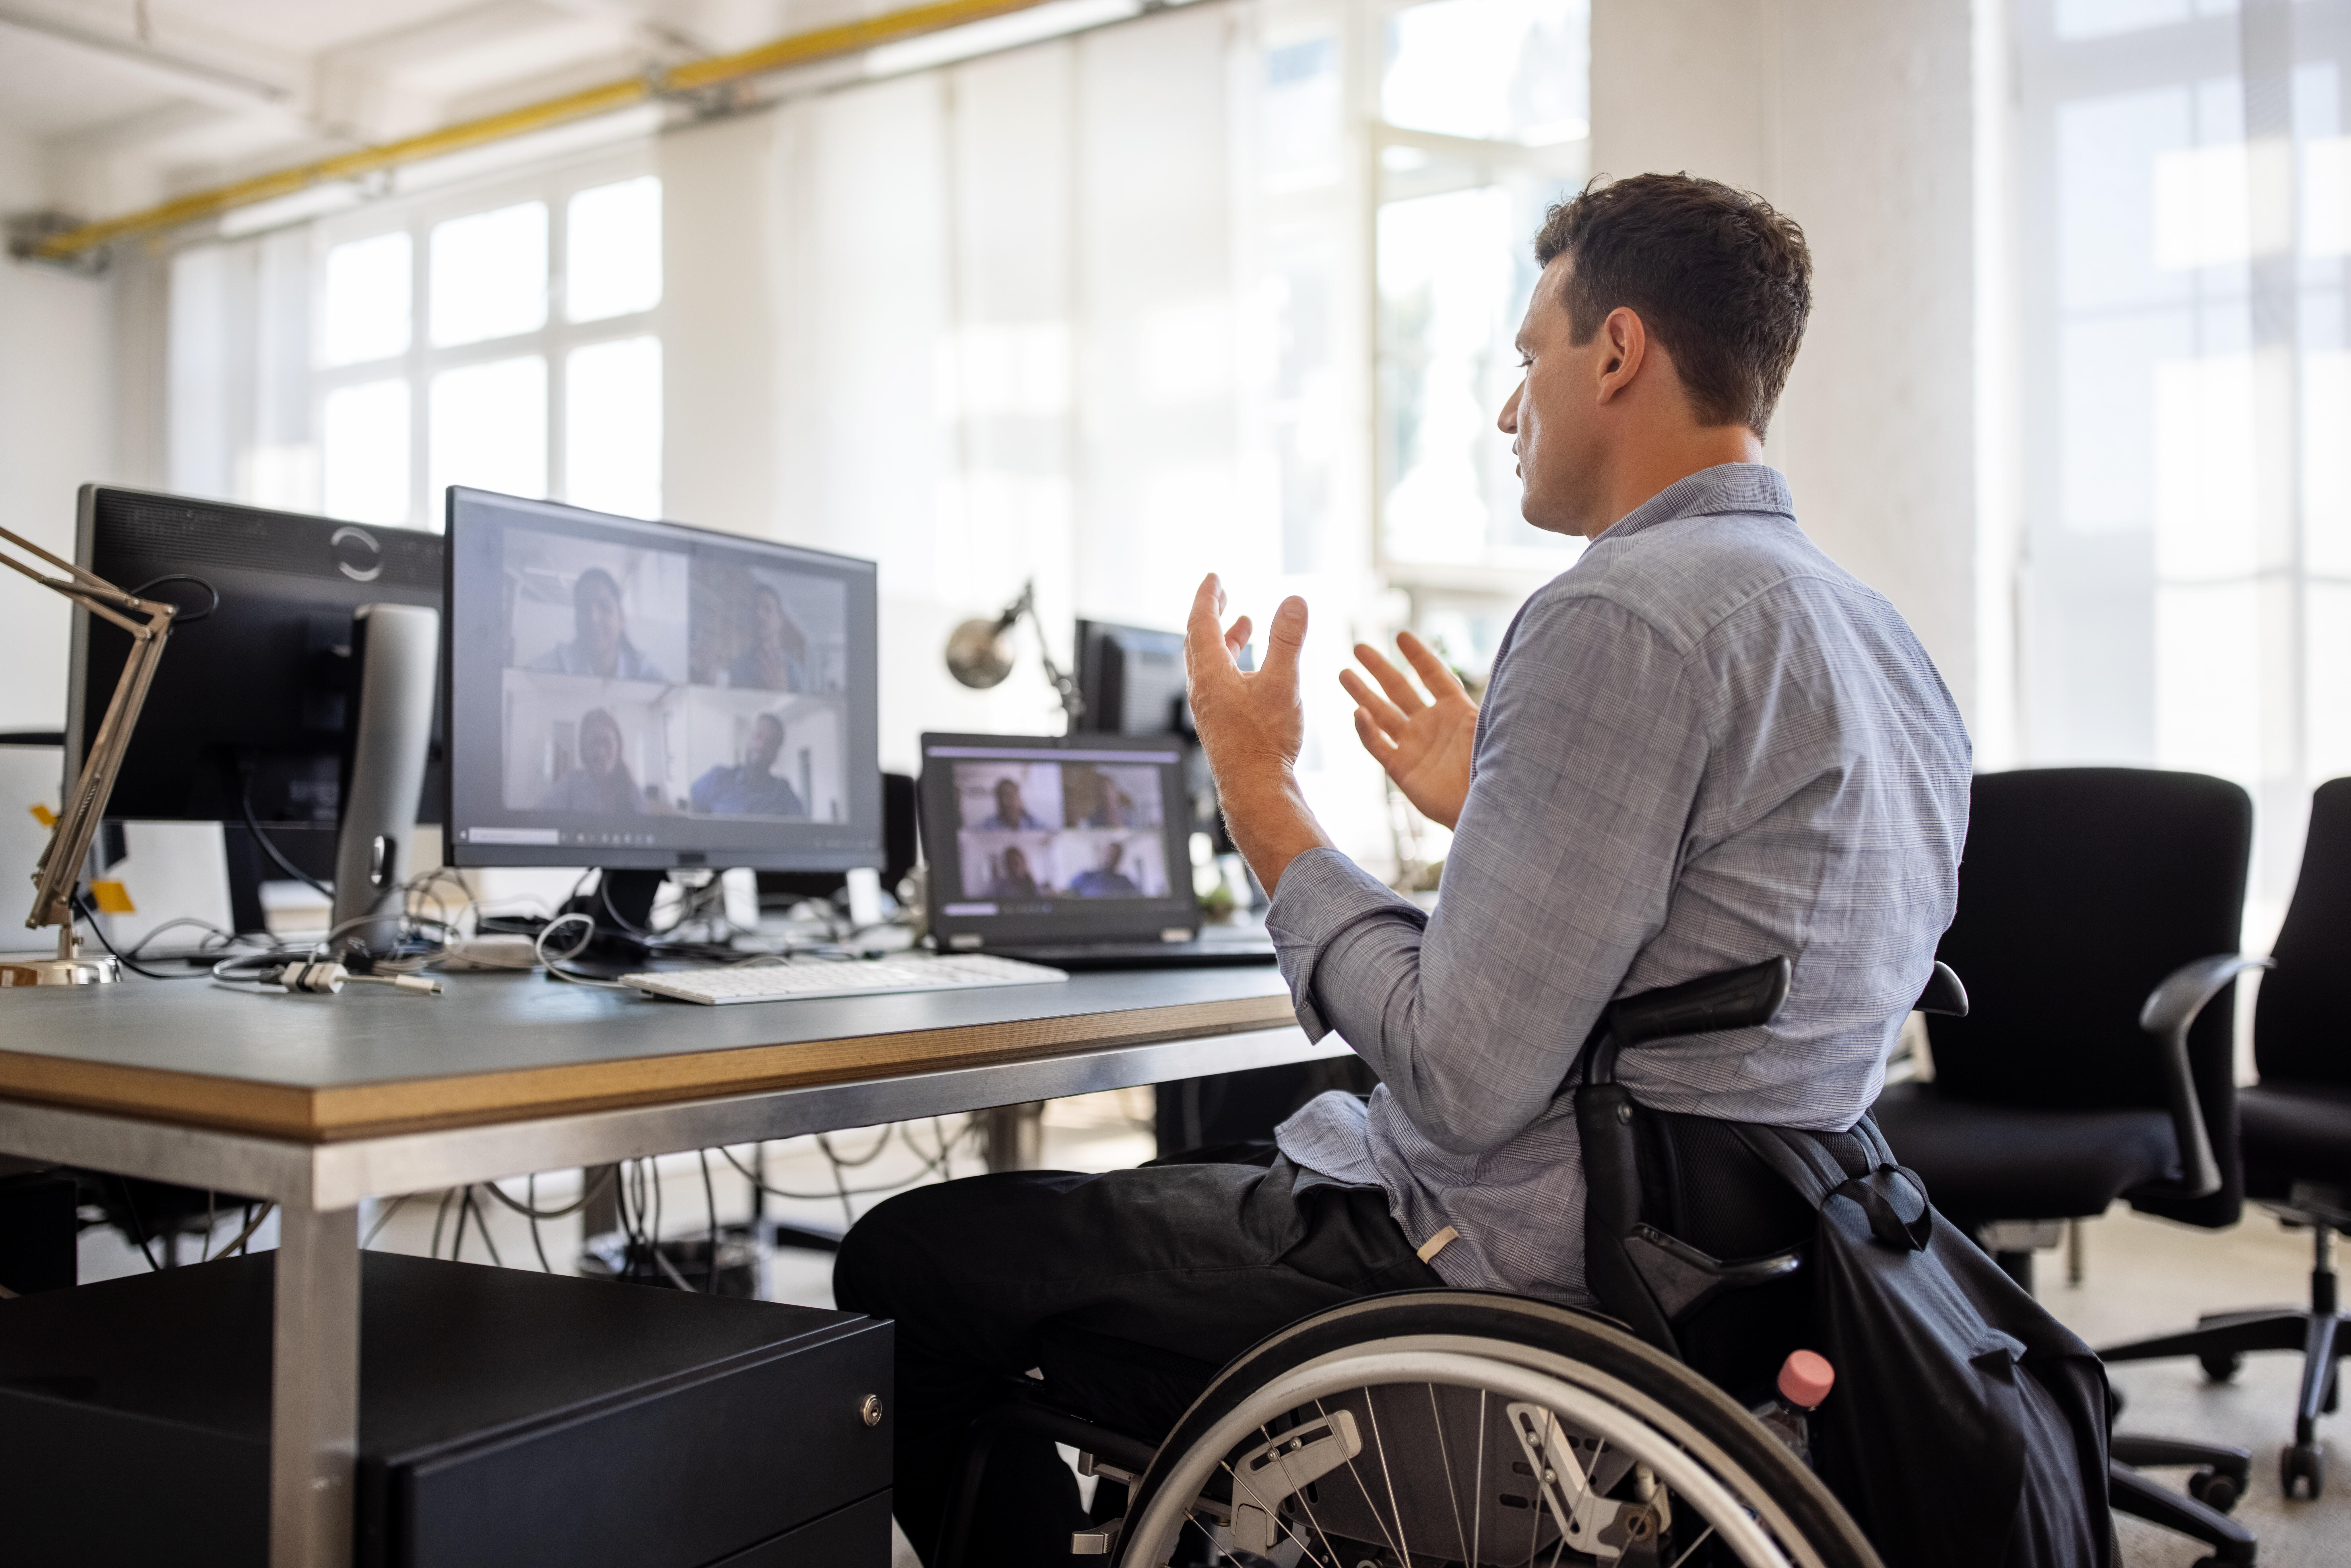 Man in wheelchair using videoconferencing on computer